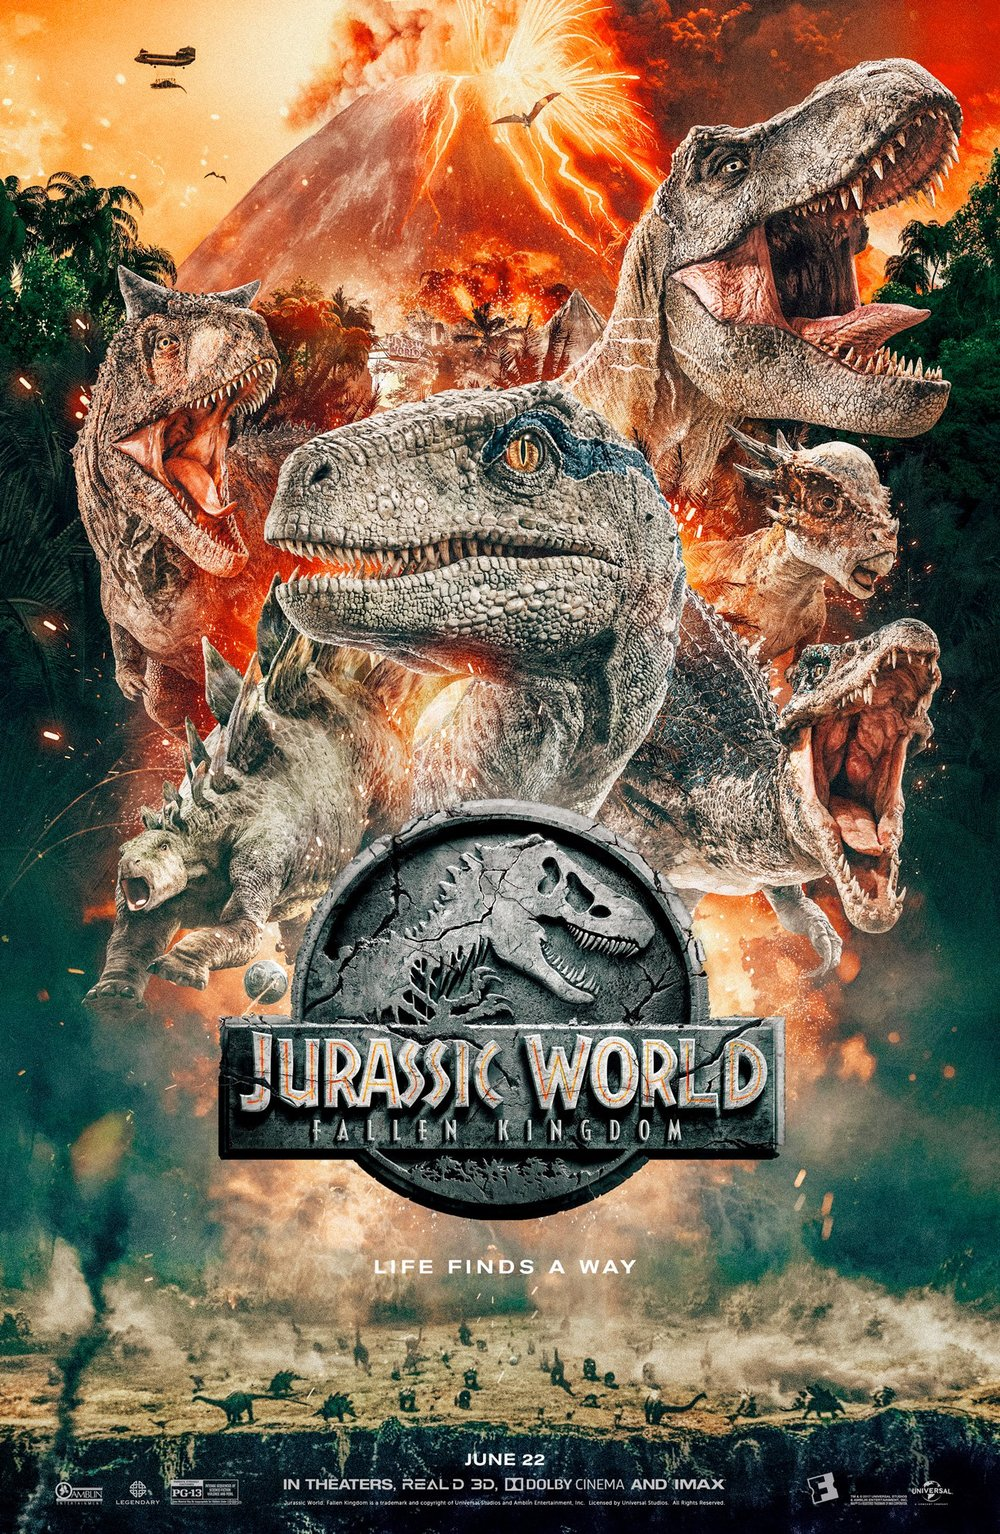 the-dinosaur-cast-is-epically-featured-in-the-new-poster-jurassic-world-fallen-kingdom1